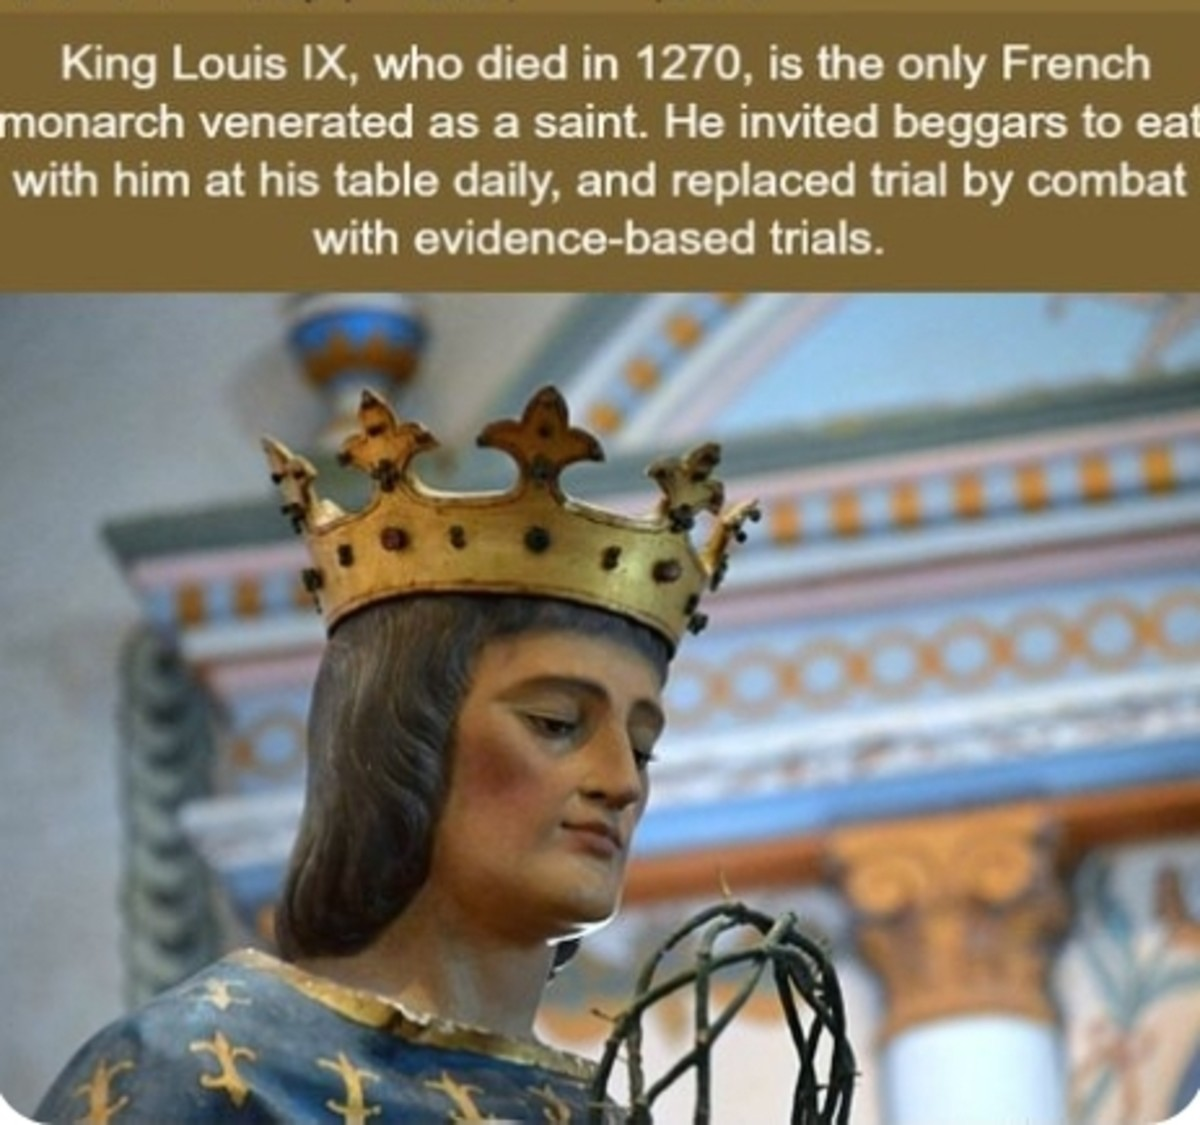 French King. .. What a poser, lemme fight for freedom dammit.